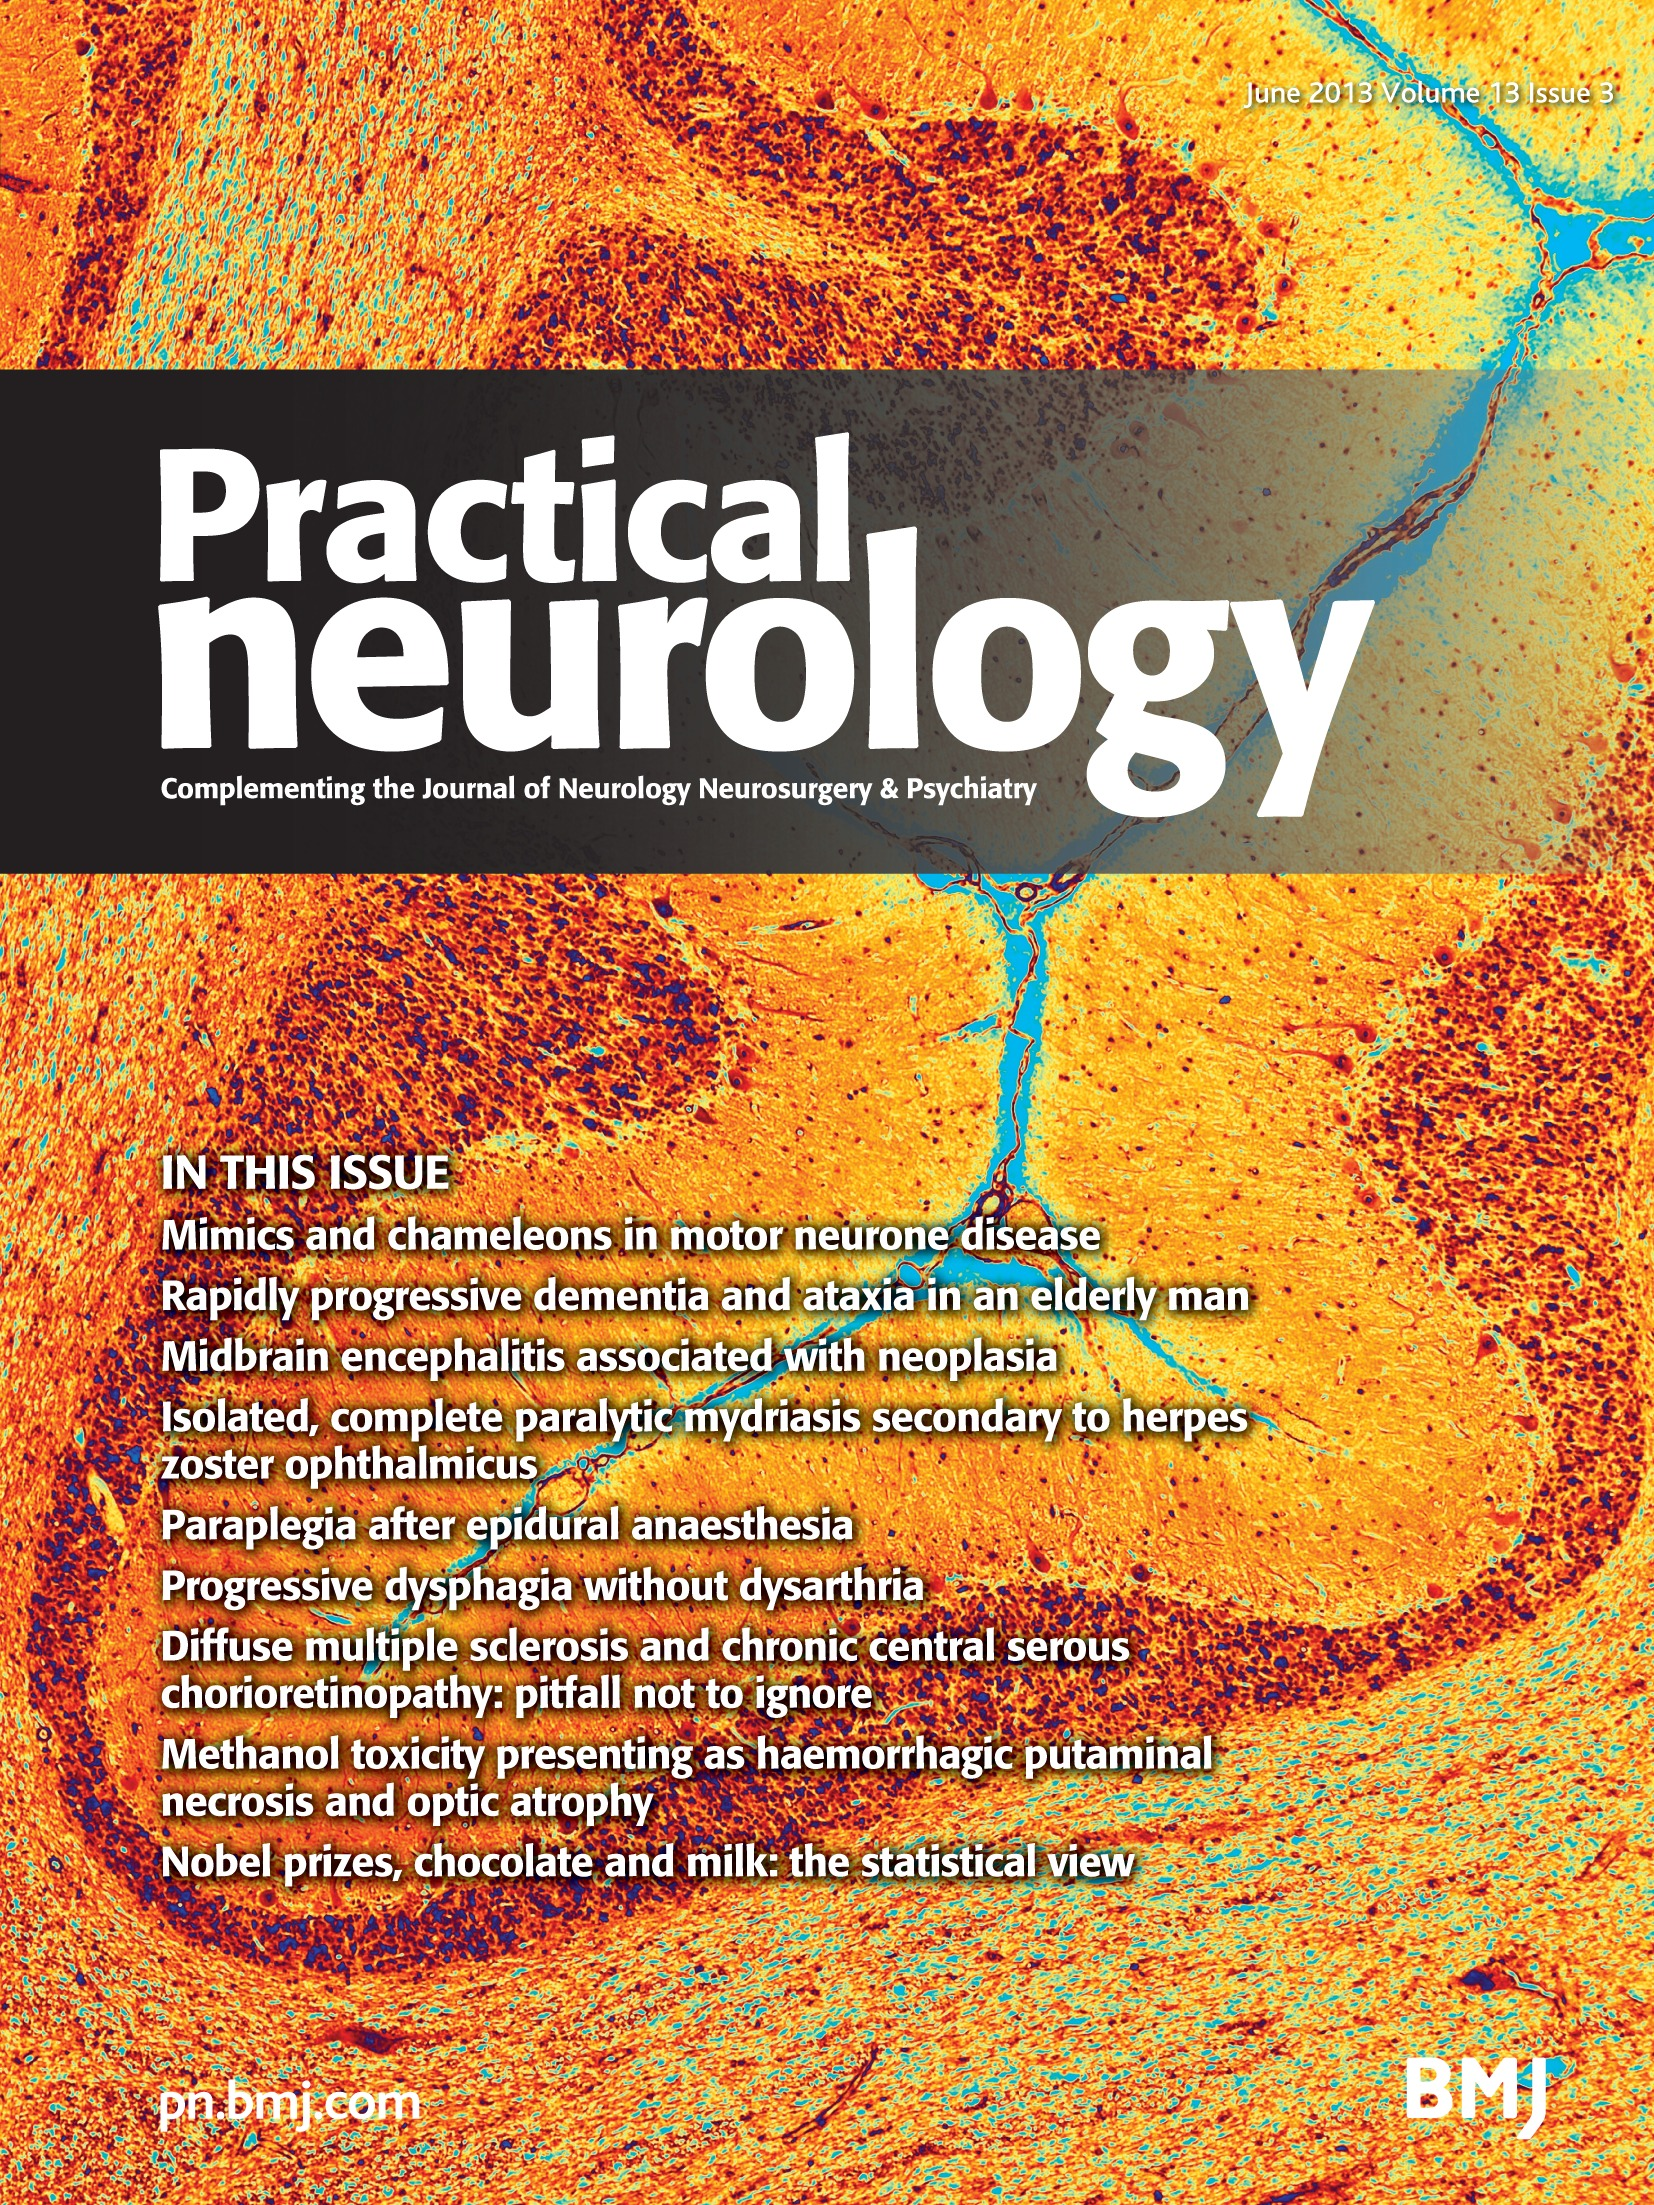 Mimics and chameleons in motor neurone disease   Practical